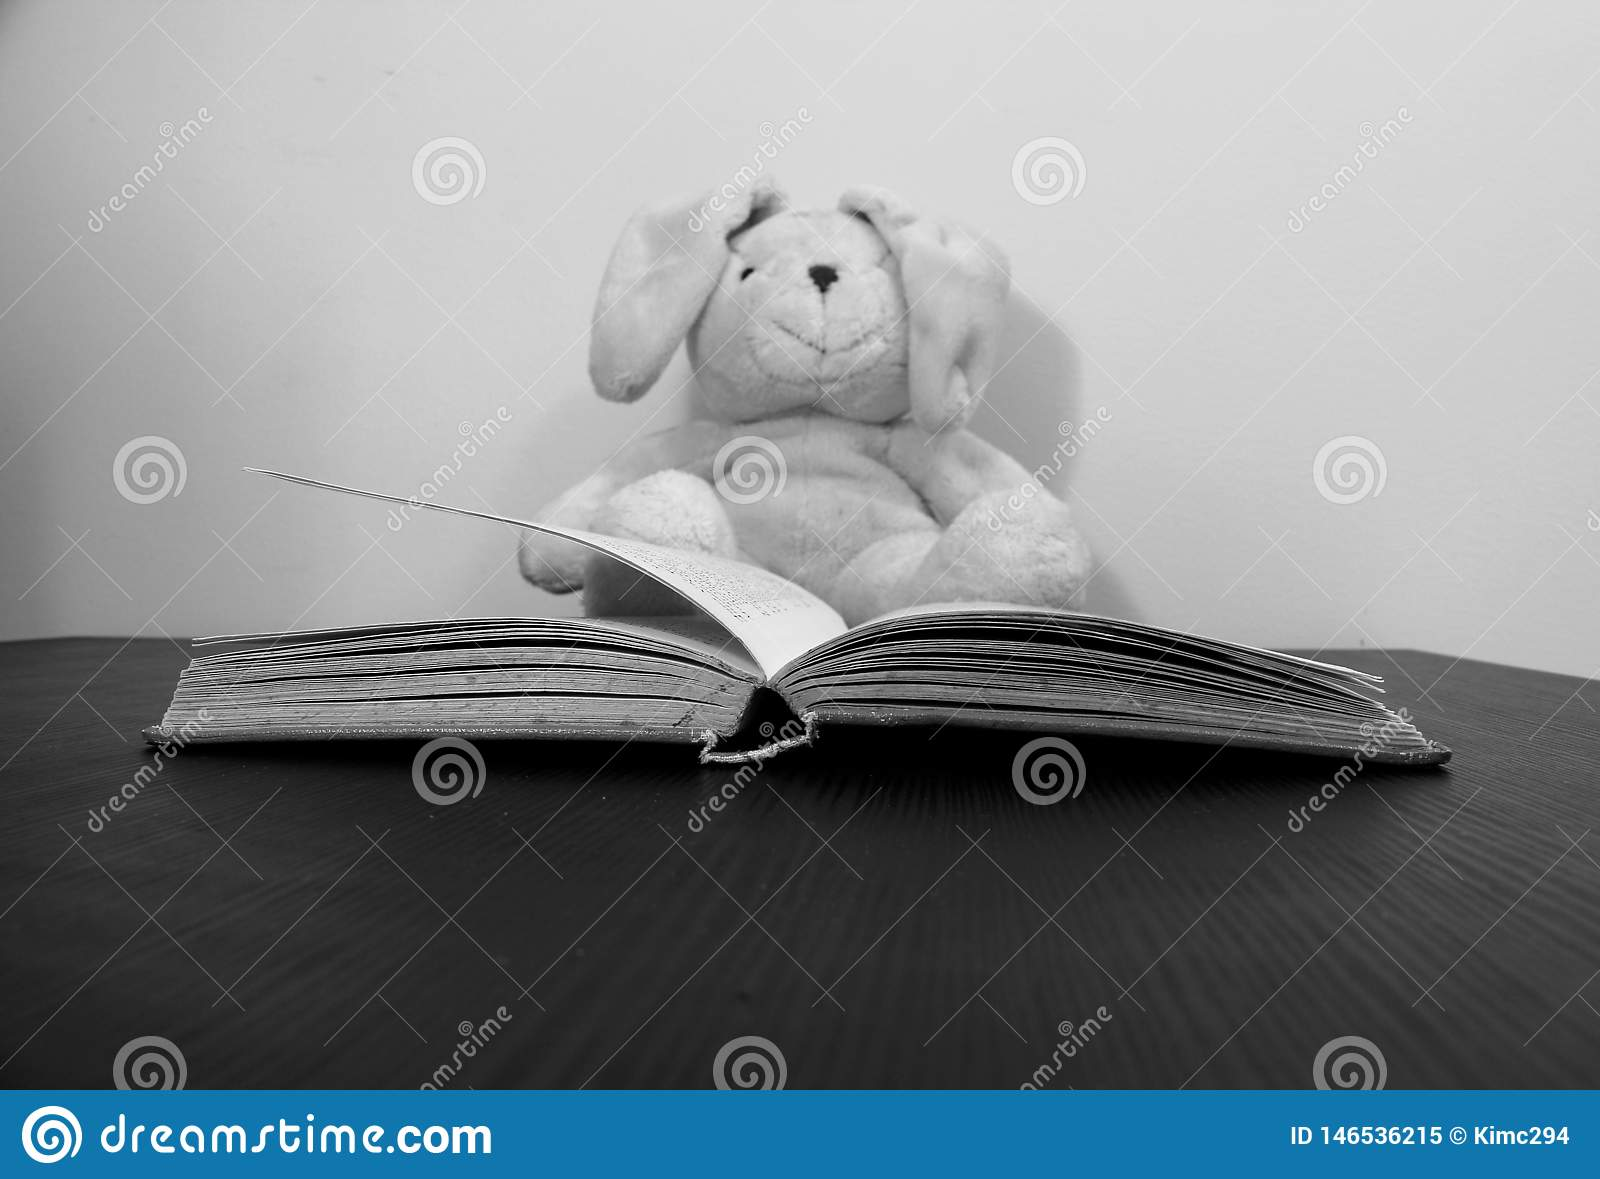 An open book lies on a table. A plush toy, slightly blurred, is seen sitting in the background.